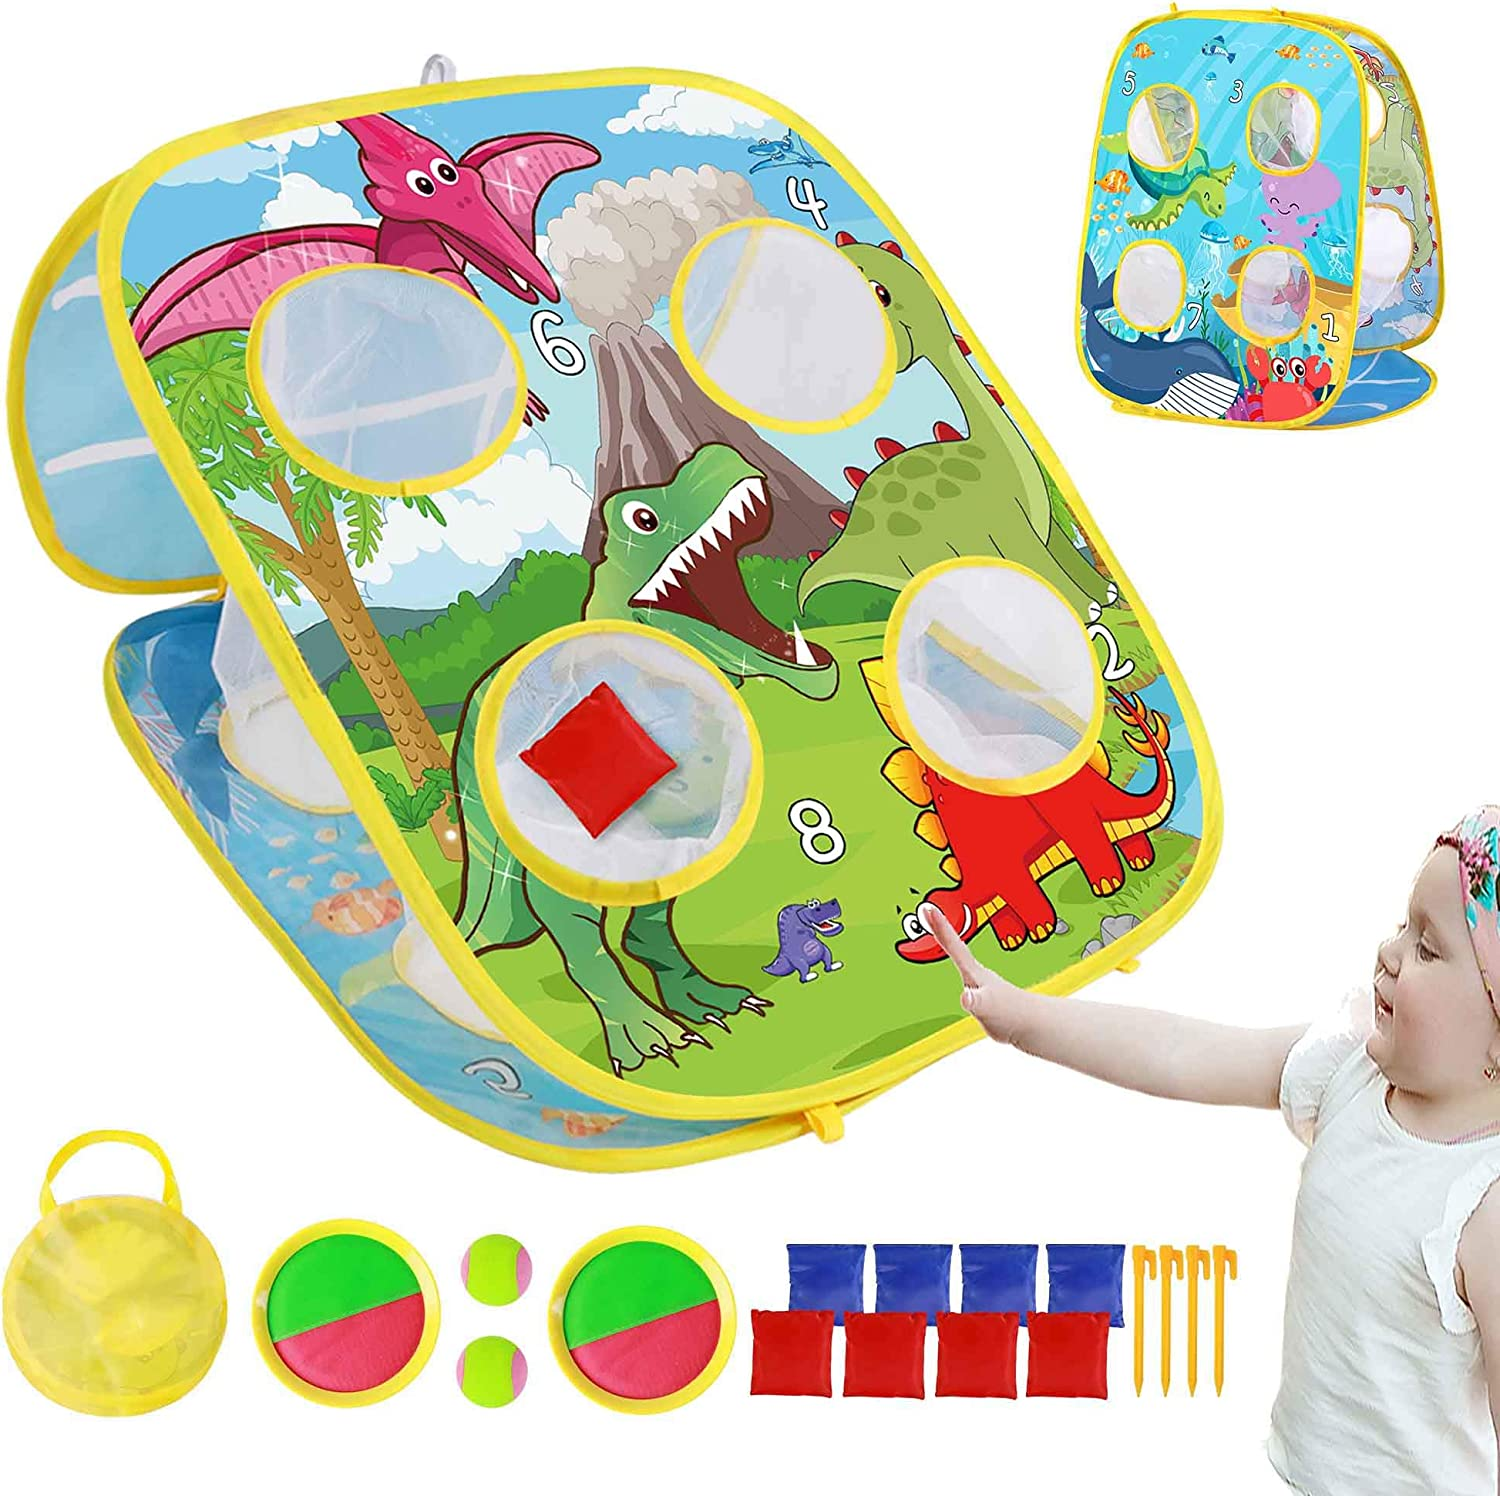 TOMYOU Bean Bag Toss Game Toy & Catching Game Set for Toddlers Age 3 4 5 6 Year Old, Gift for Kids Birthday or Christmas, Dinosaur Themed, Indoor & Outdoor Toys, 8 Beanbags